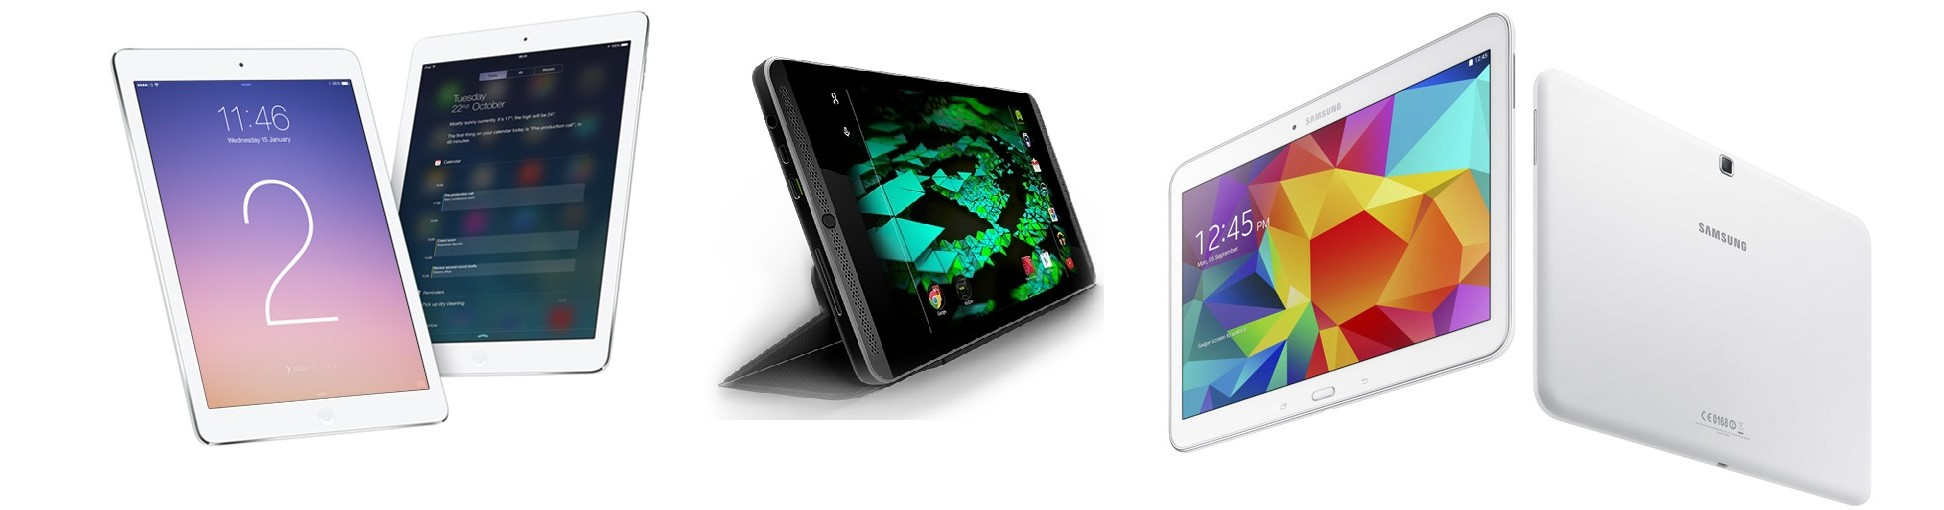 iPad Air 2 vs Galaxy Tab 4 10.1 vs Nvidia Shield Tablet: performance and prices compared